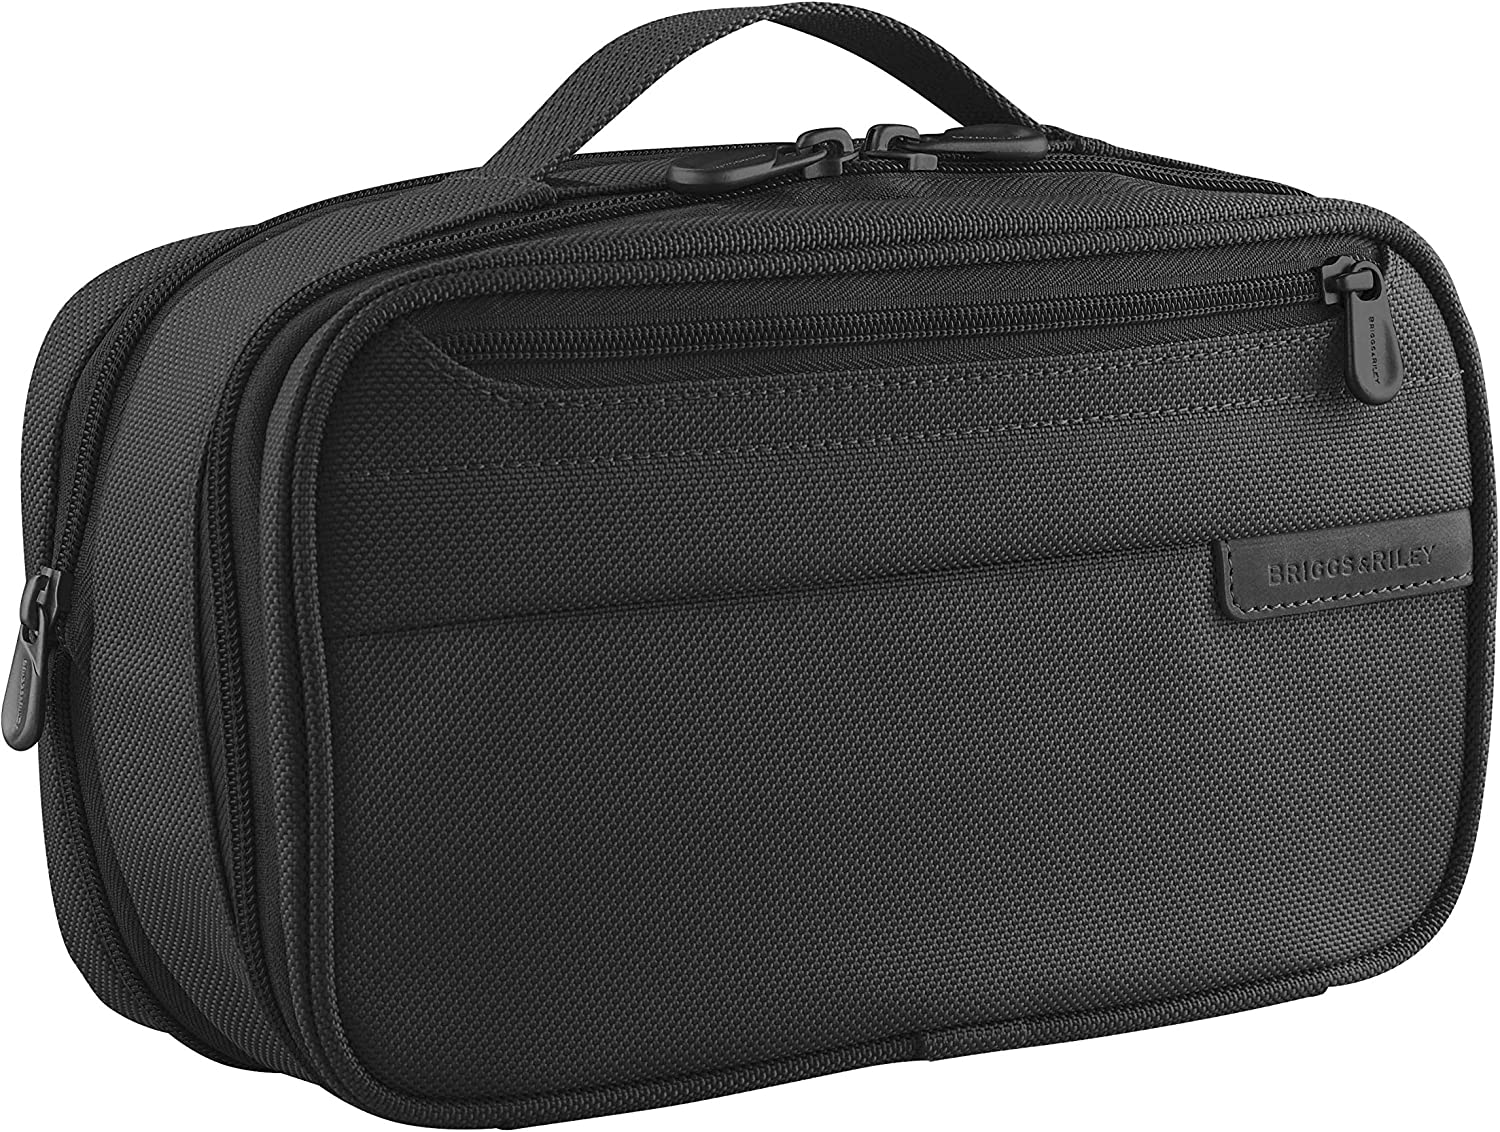 Briggs Riley Baseline-Expandable favorite Toiletry Size Black One Kit Max 78% OFF